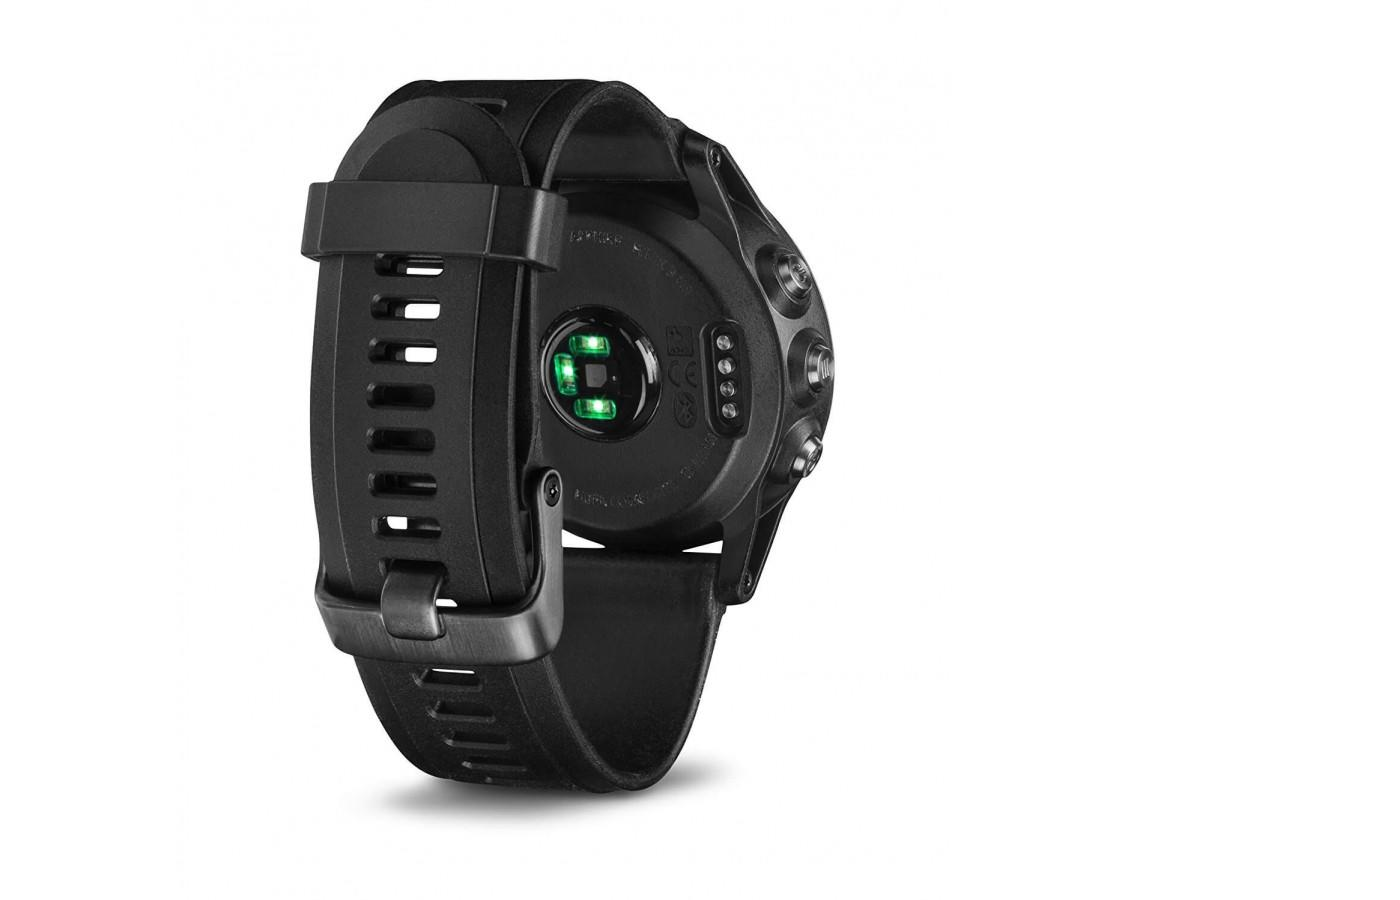 The Fenix 3 Sapphire has a heart rate monitor